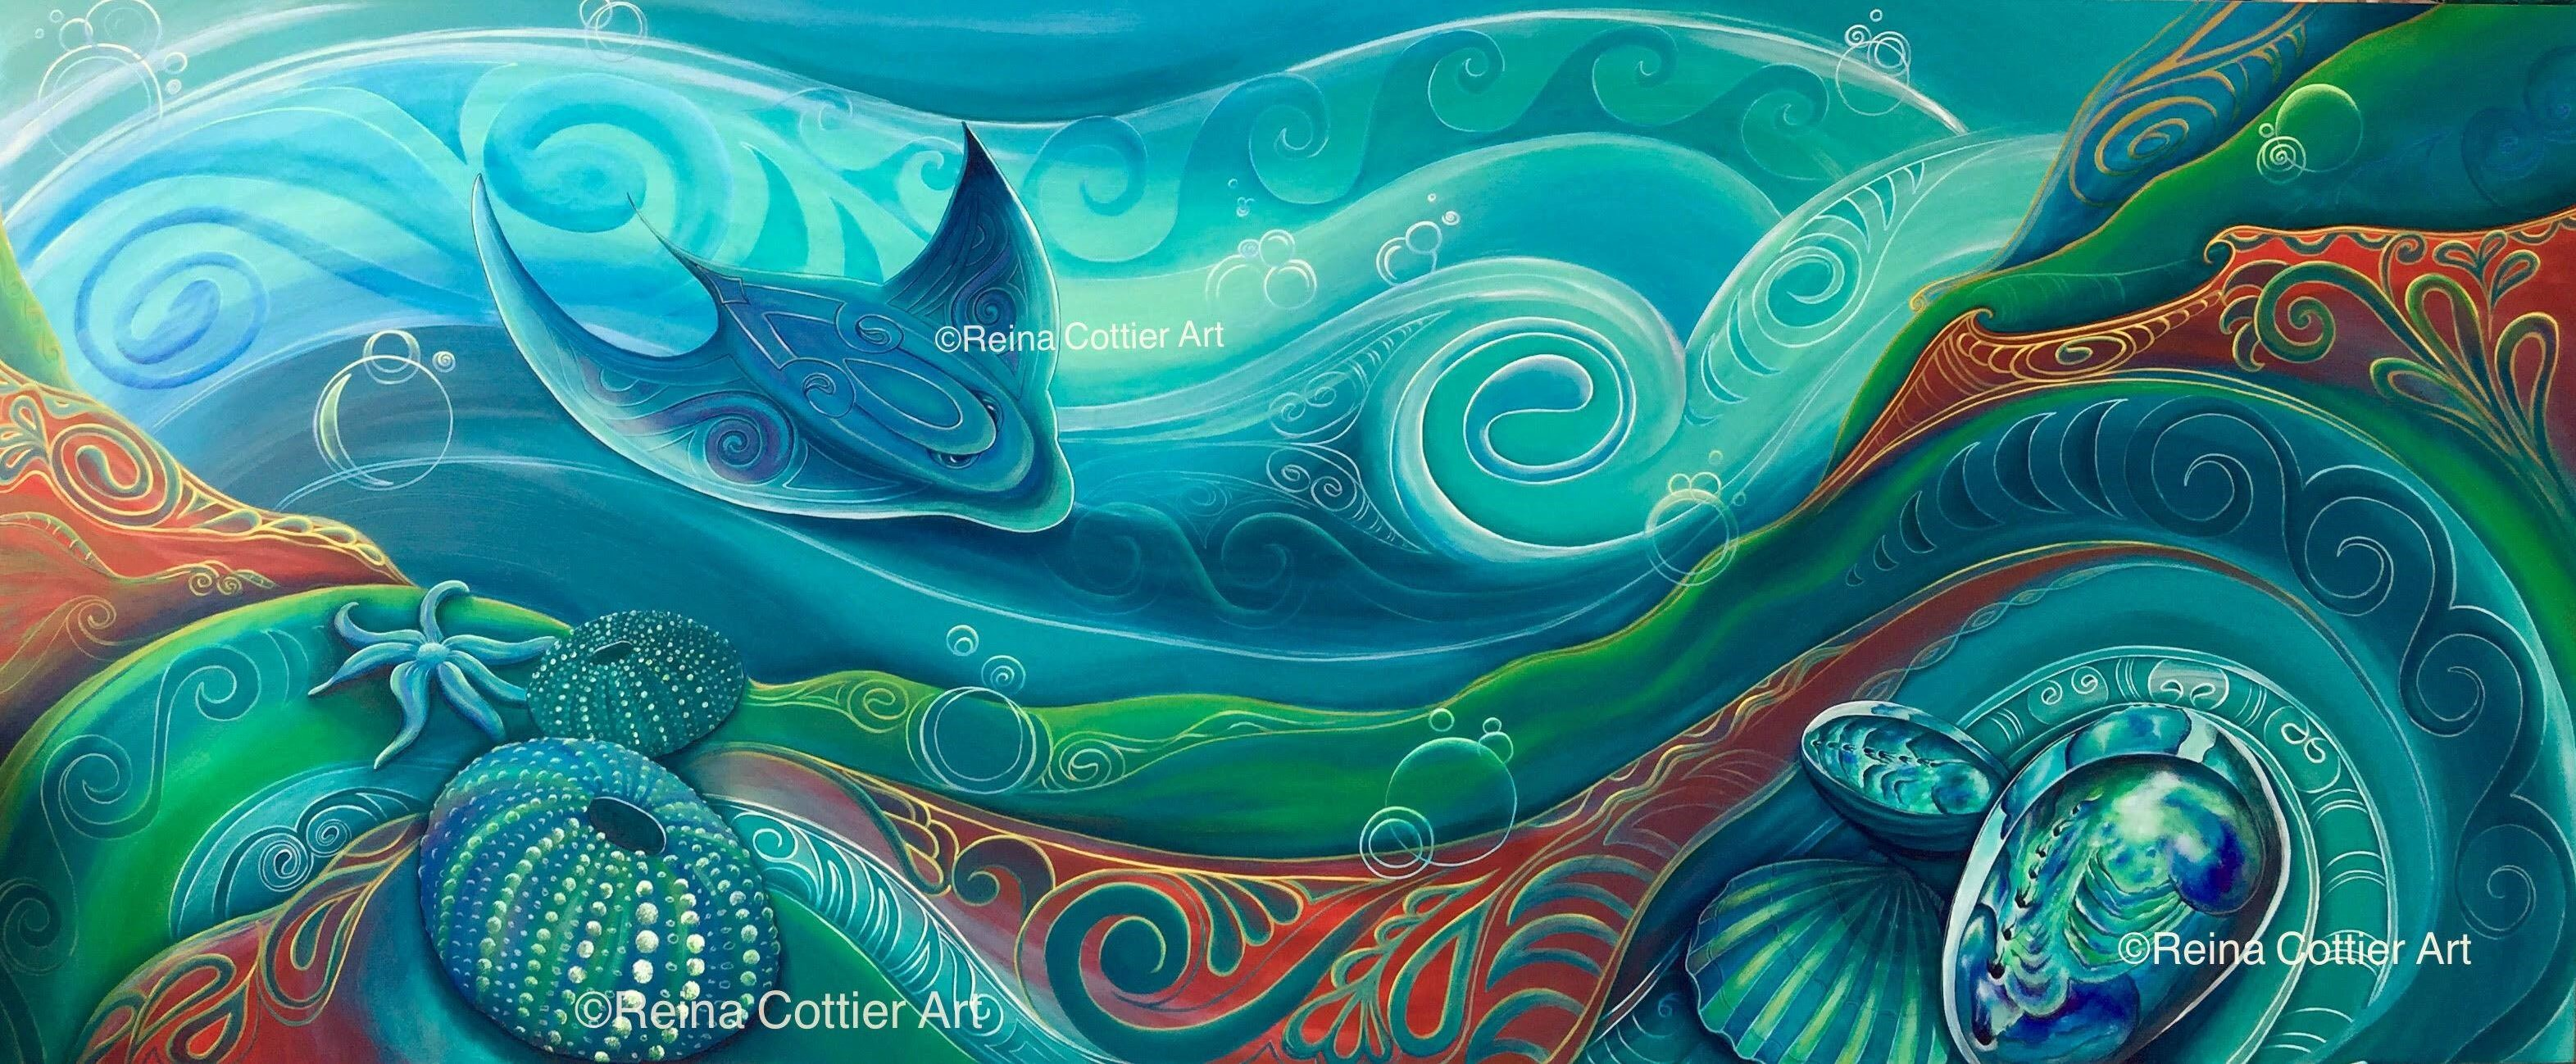 NZ Seabed. by Reina Cottier . Canvas Prints available.